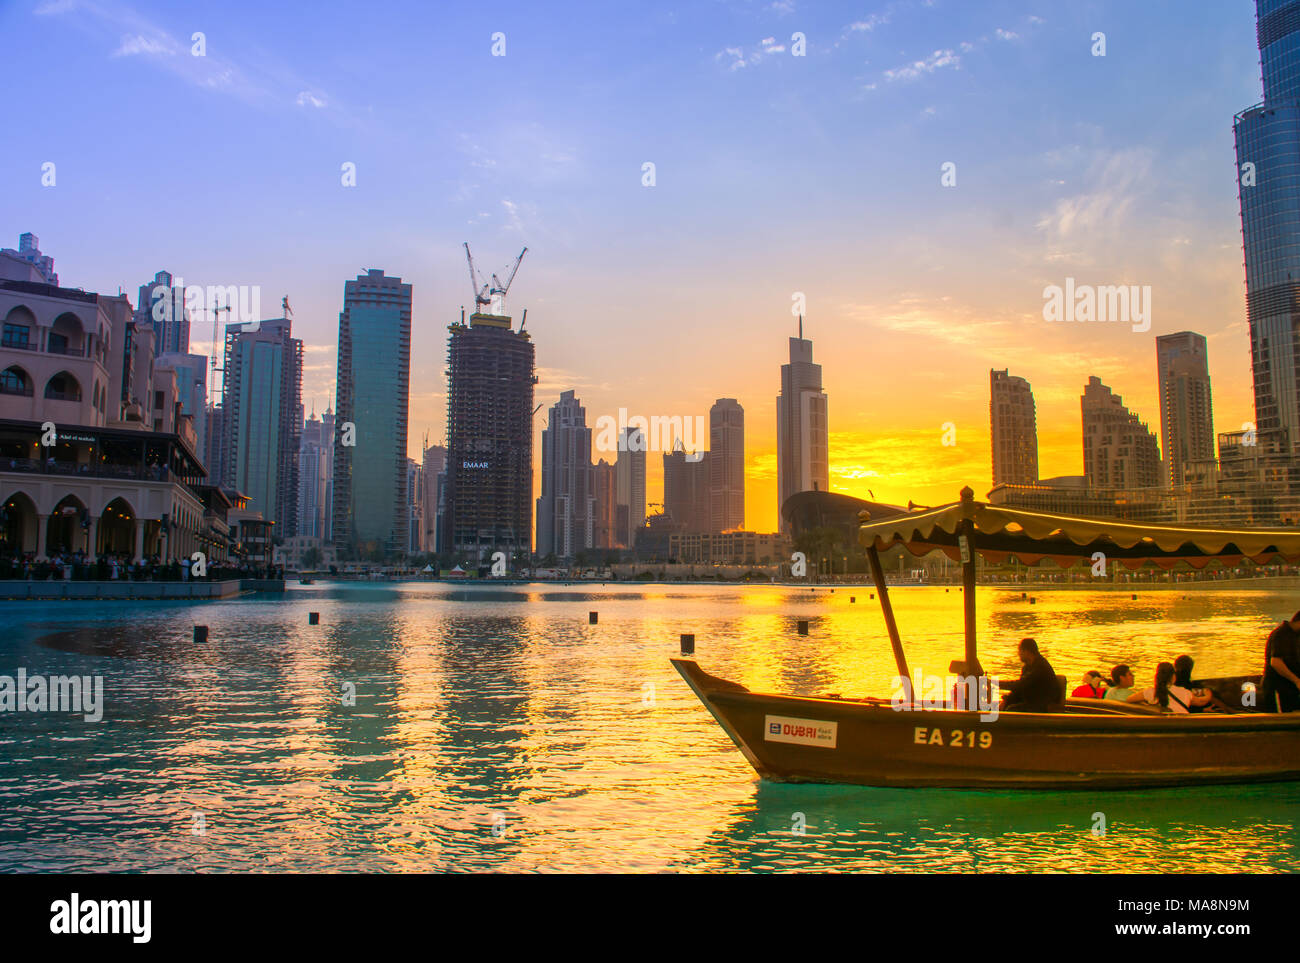 Dubai Fountain Lake Ride, dancing fountain show next to the Dubai Mall and Burj Khalifa - Stock Image